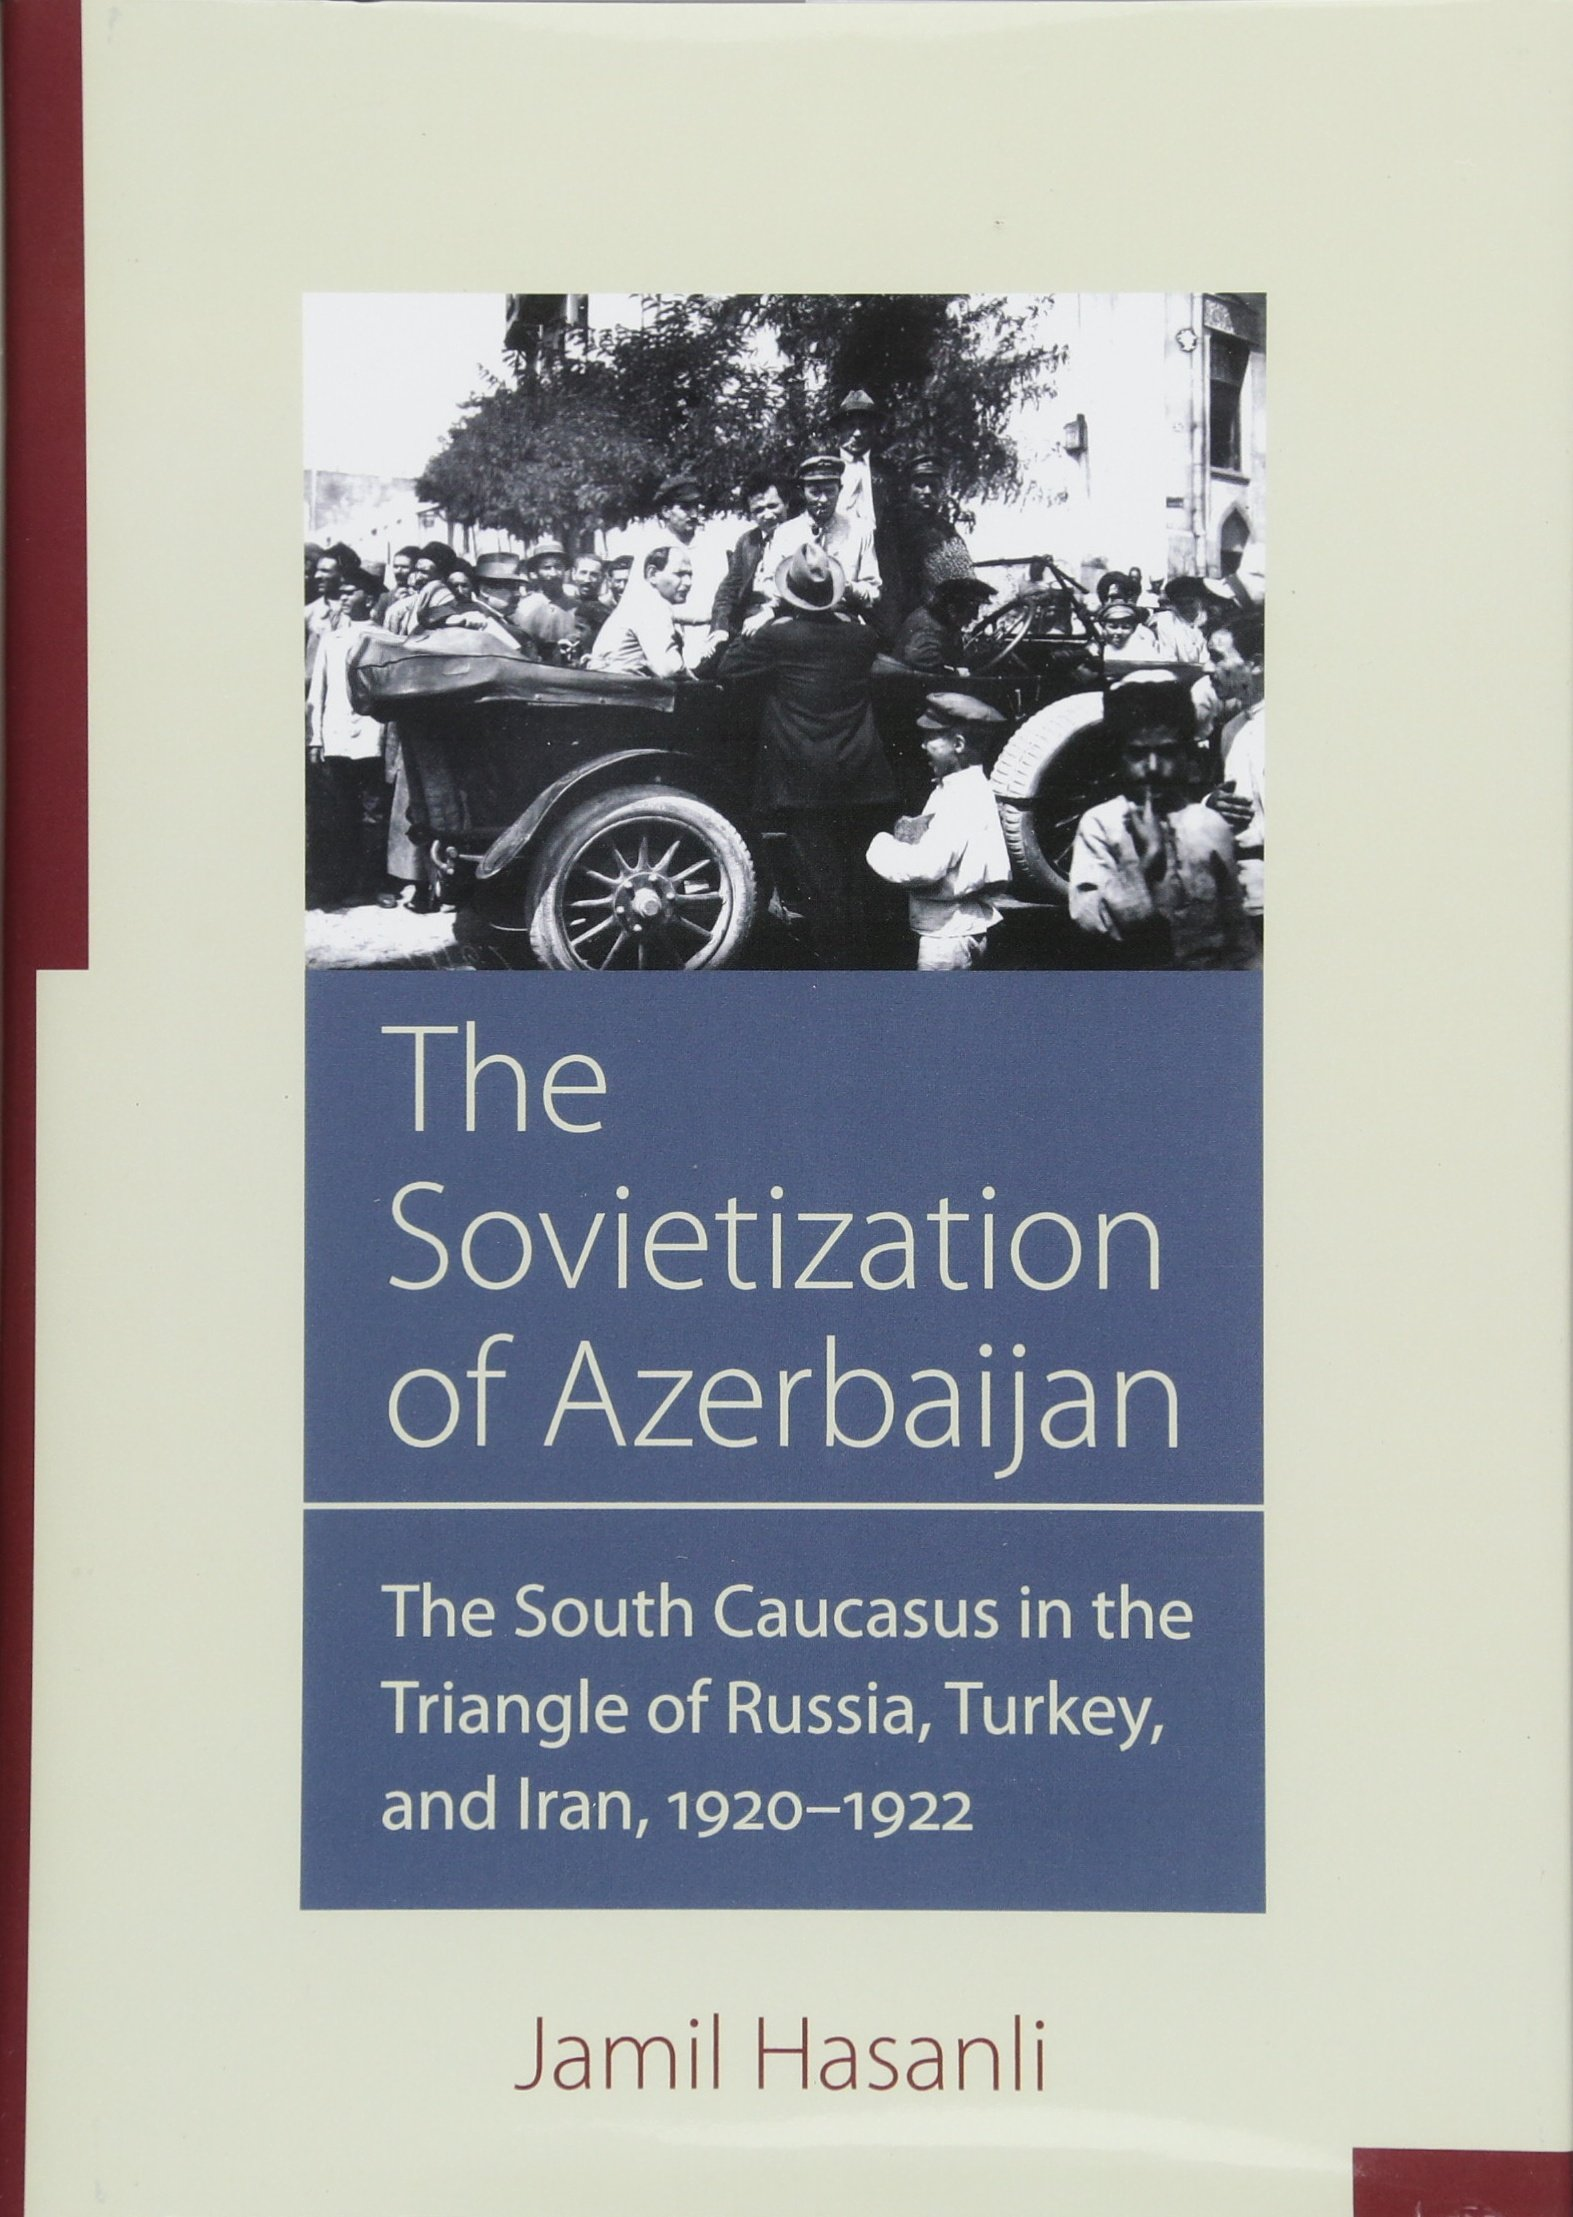 The Sovietization of Azerbaijan The South Caucasus in the Triangle